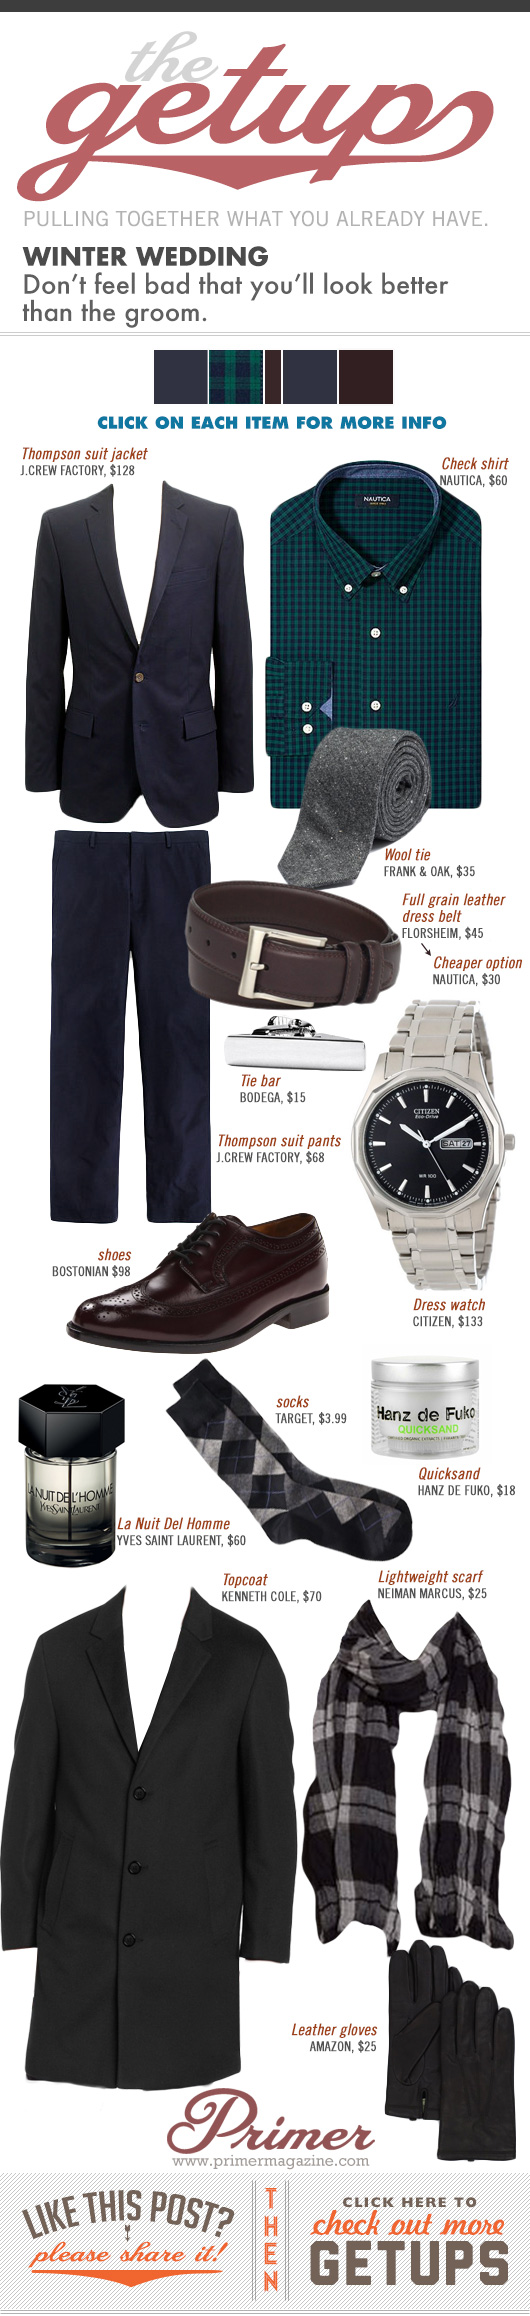 Getup Winter Wedding - Navy suit, Green shirt, gray tie, brown shoes